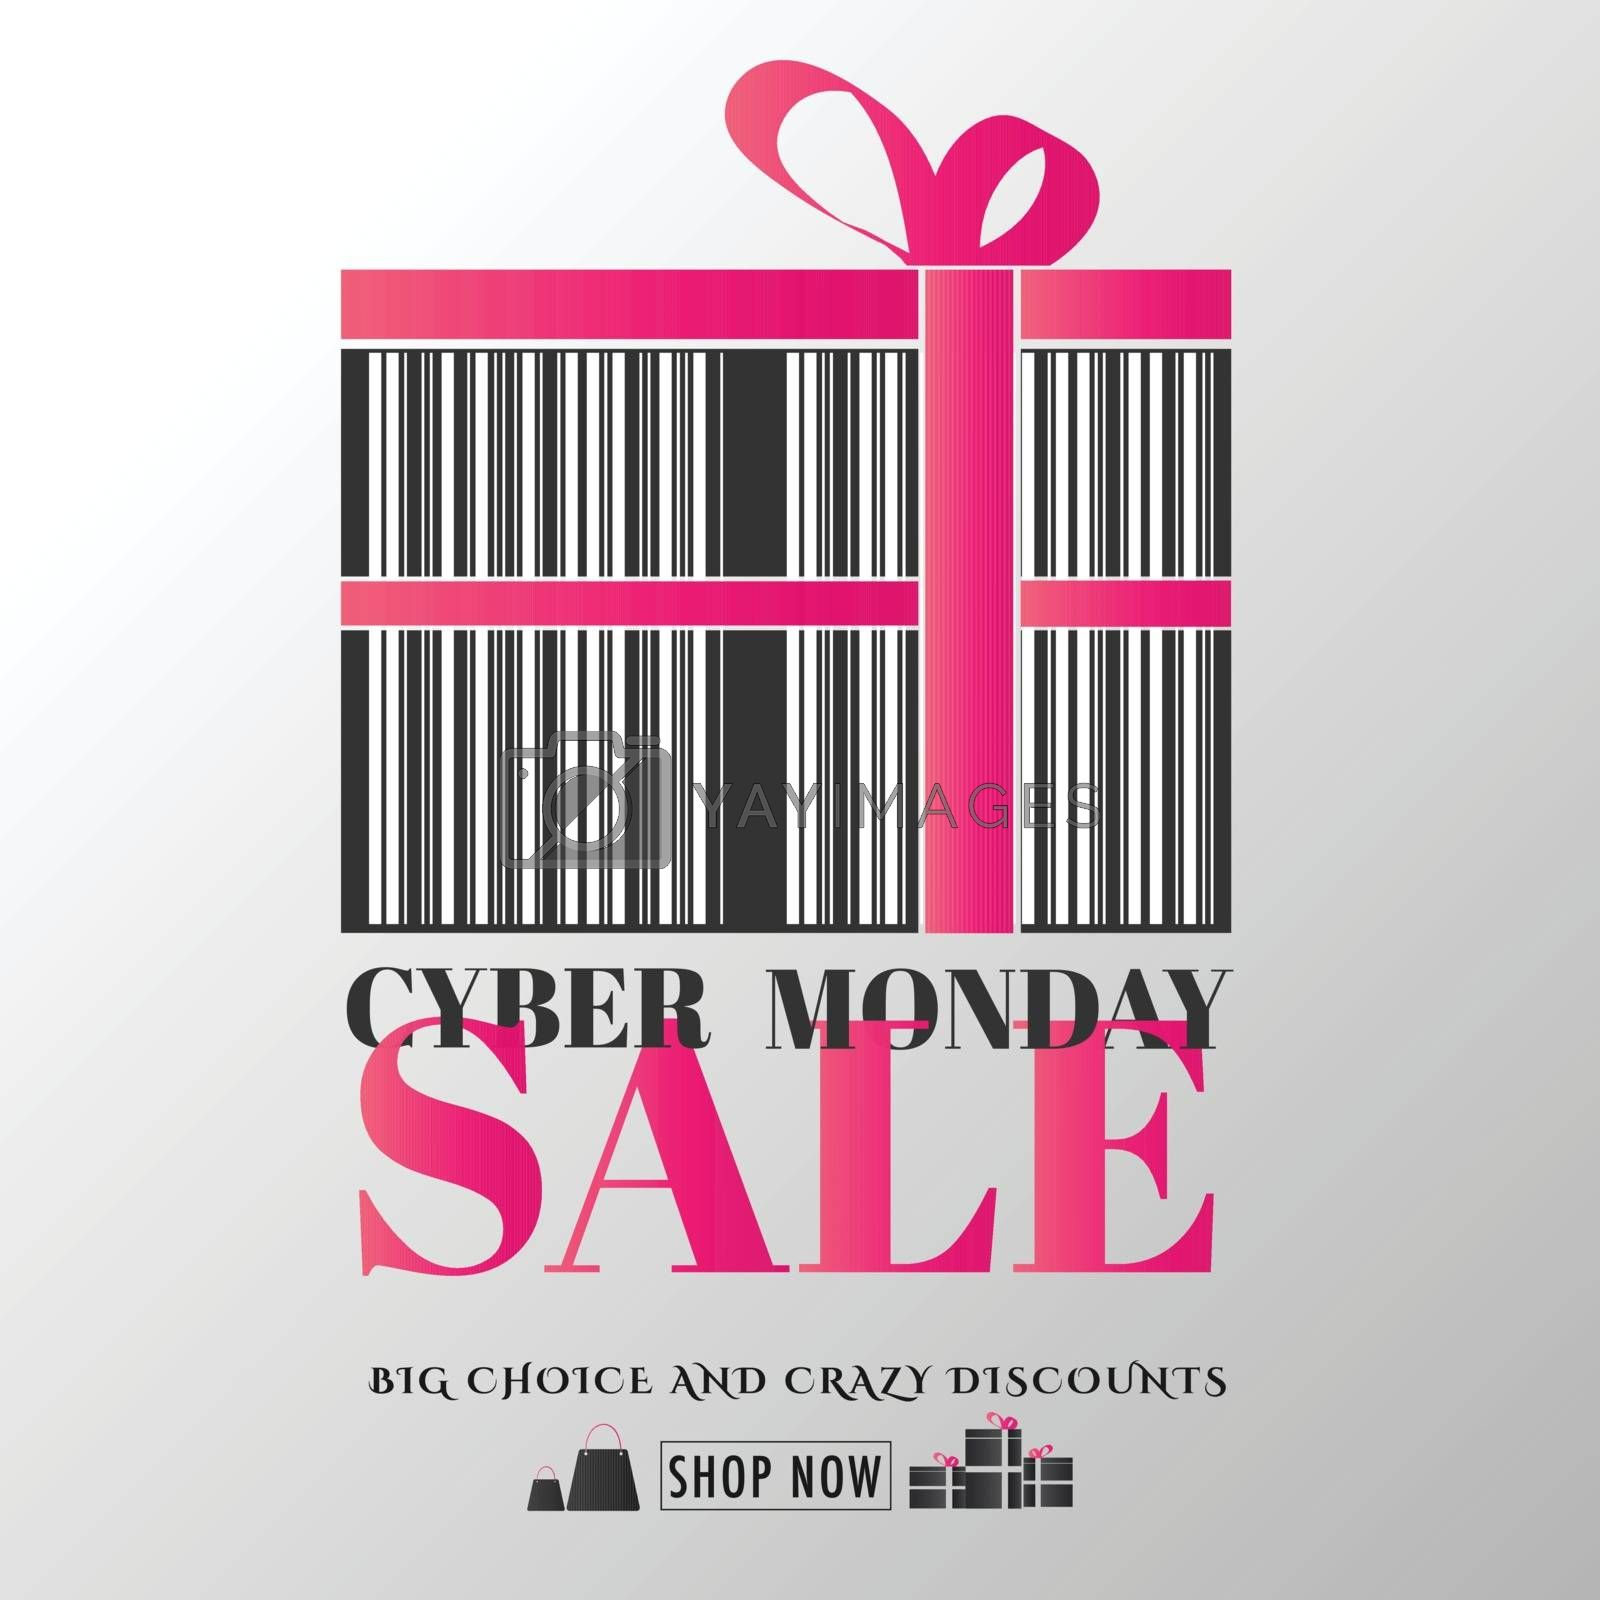 Barcode style gift box with pink ribbon on glossy white background. Template or flyer design for Cyber Monday Sale.